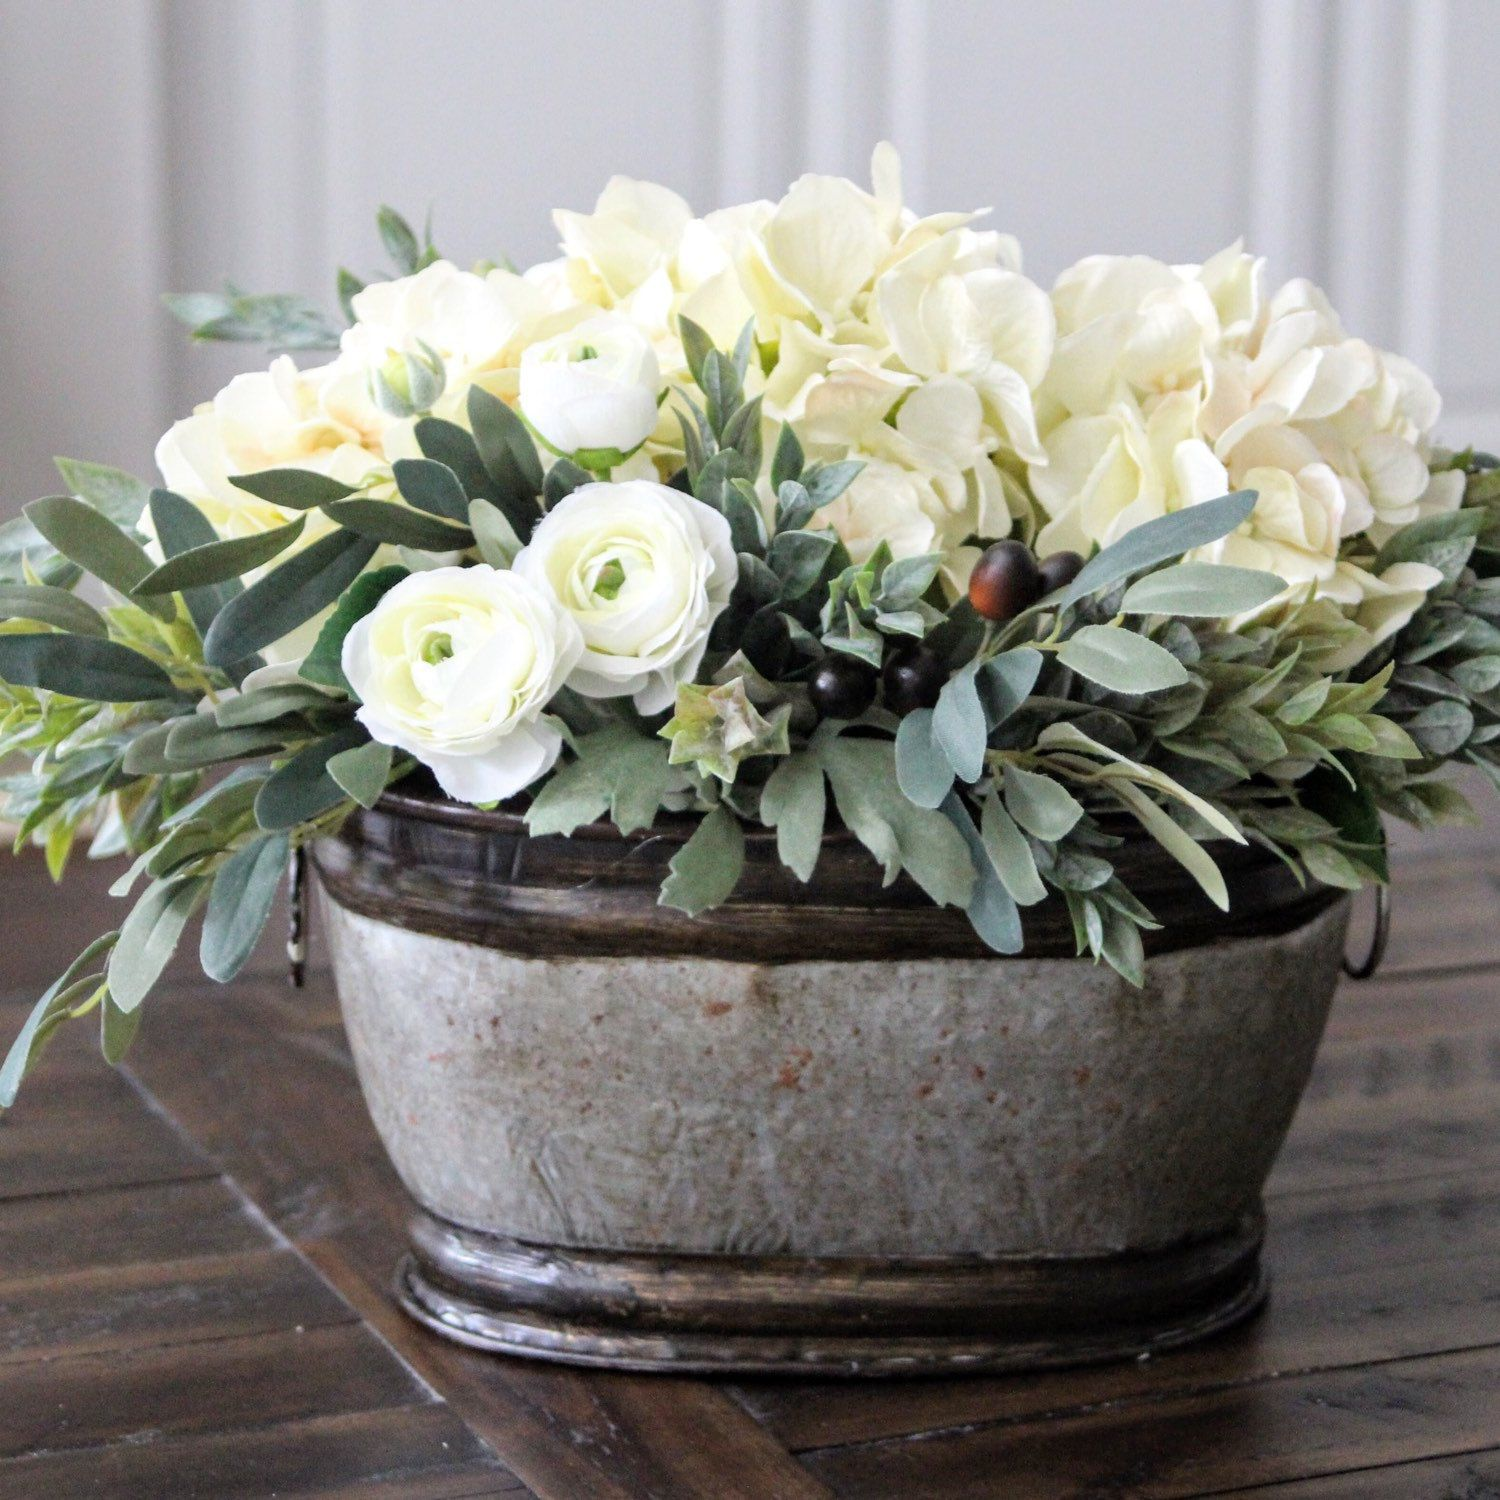 Farmhouse Floral Arrangement Rustic Table Centerpieceolive Etsy Flower Arrangements Floral Arrangements Flowers